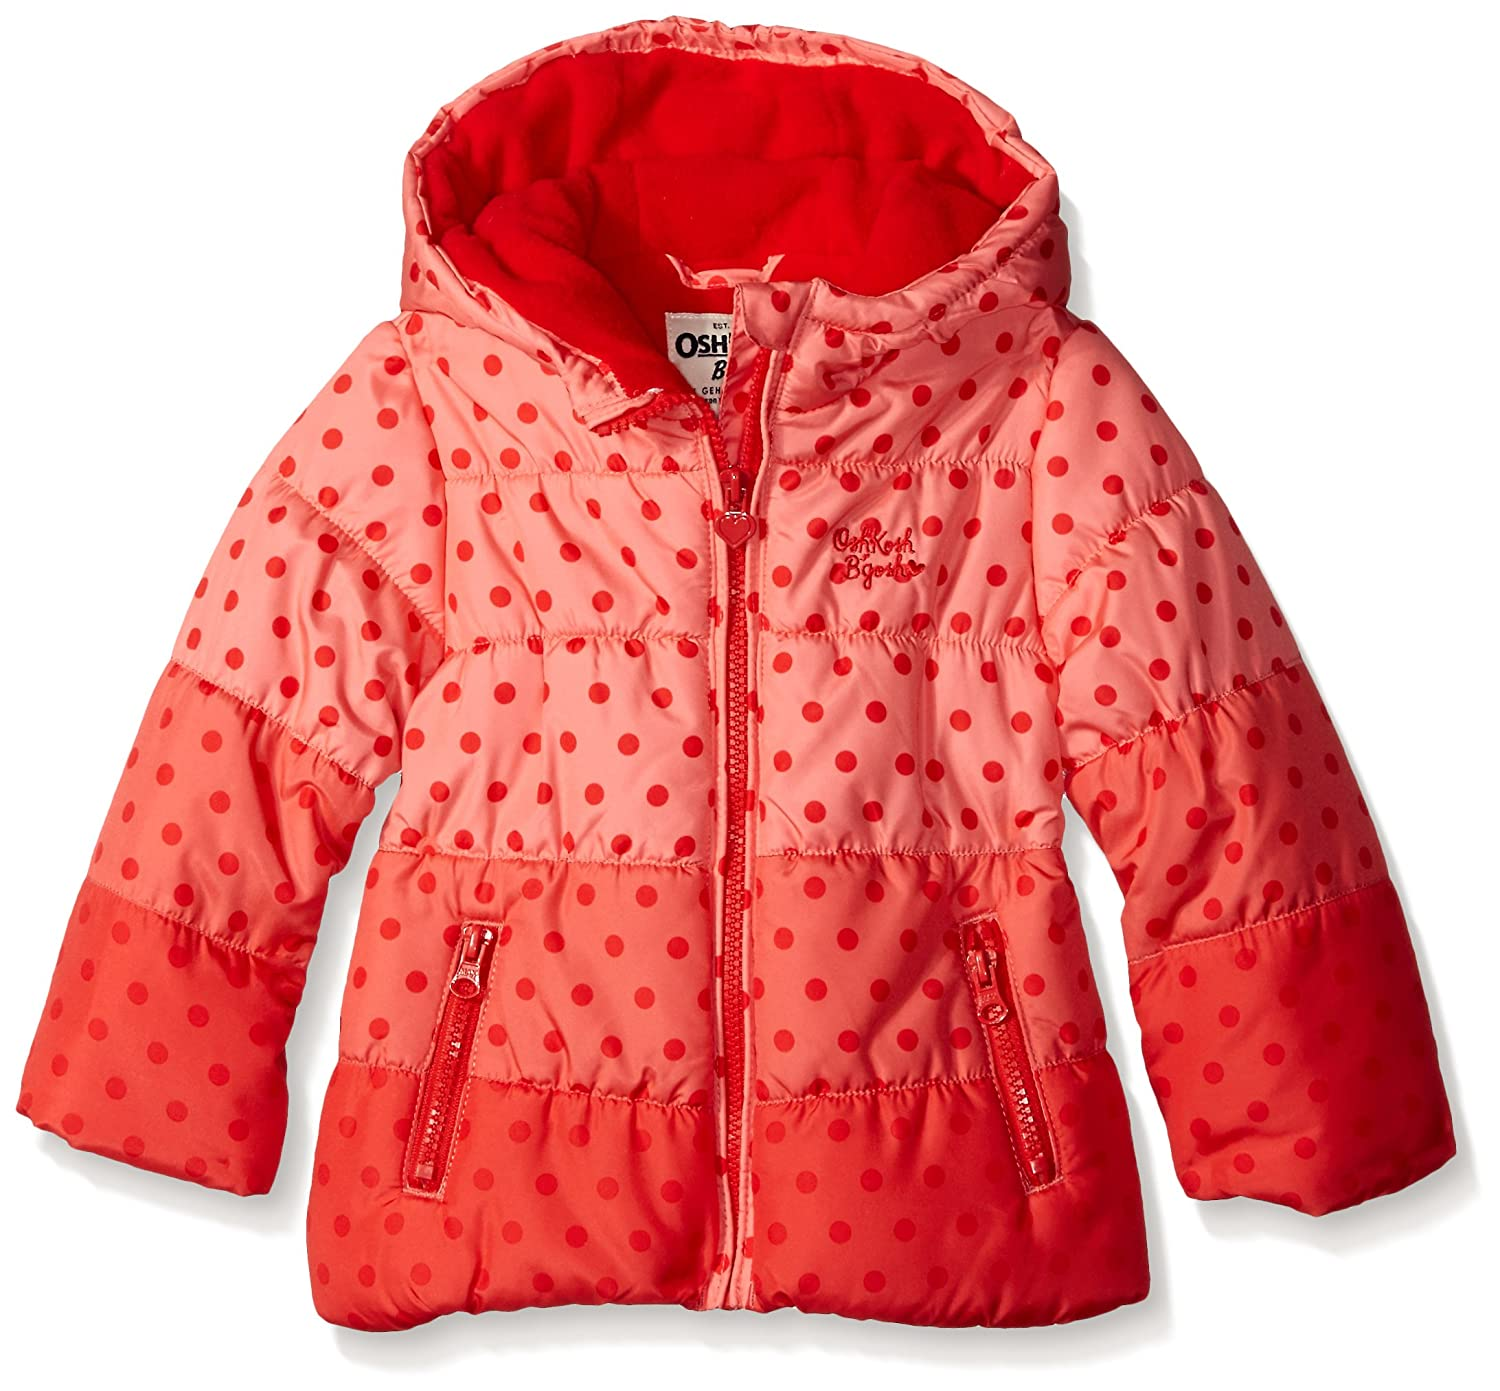 Osh Kosh Girls' Puffer with Ombre Dots B215702